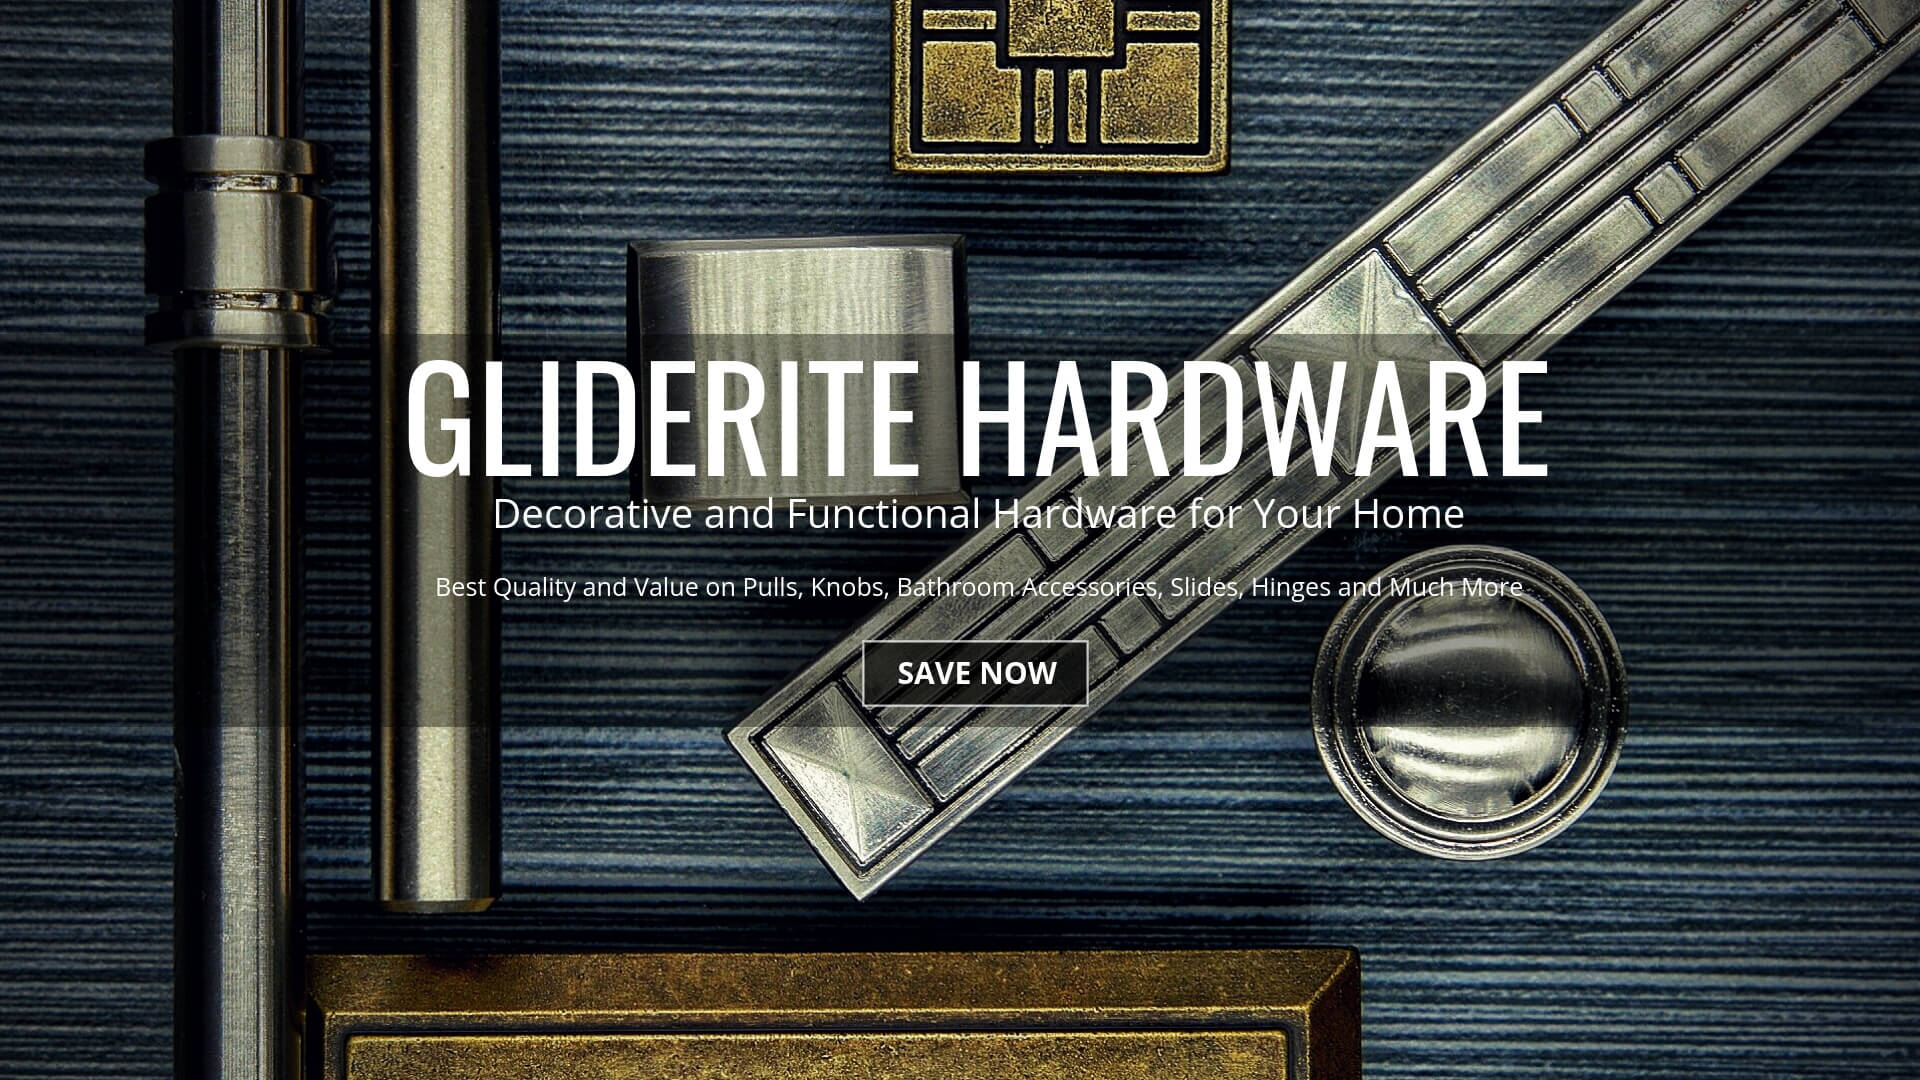 GlideRite Hardware - Cabinet Hardware Pulls, Knobs Backplates and More